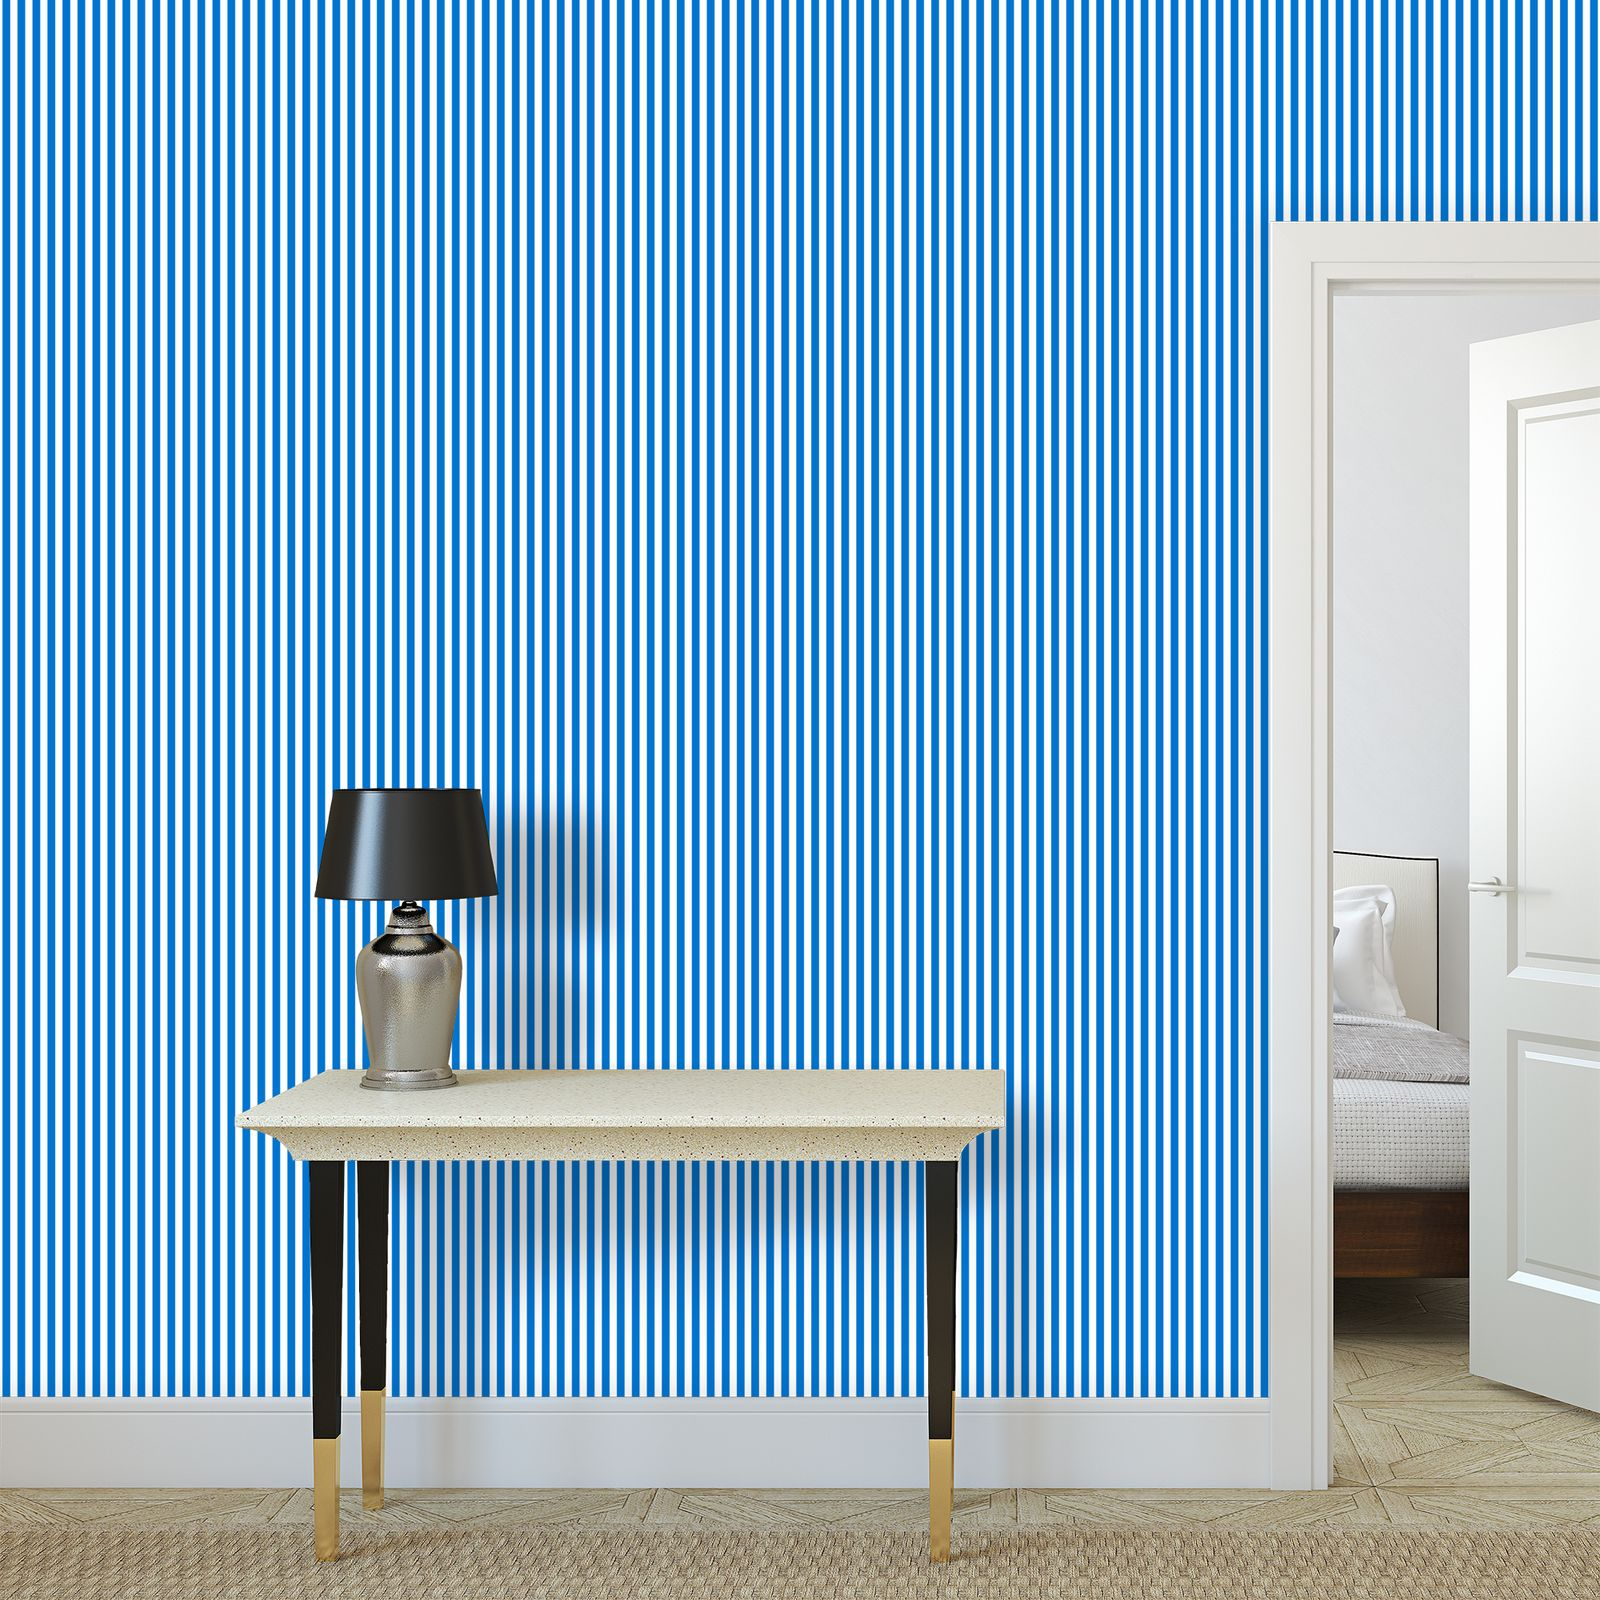 Vacation by the sea - Wallpaper Rolls - Horizontally striped, white and blue, marine, resort seaside